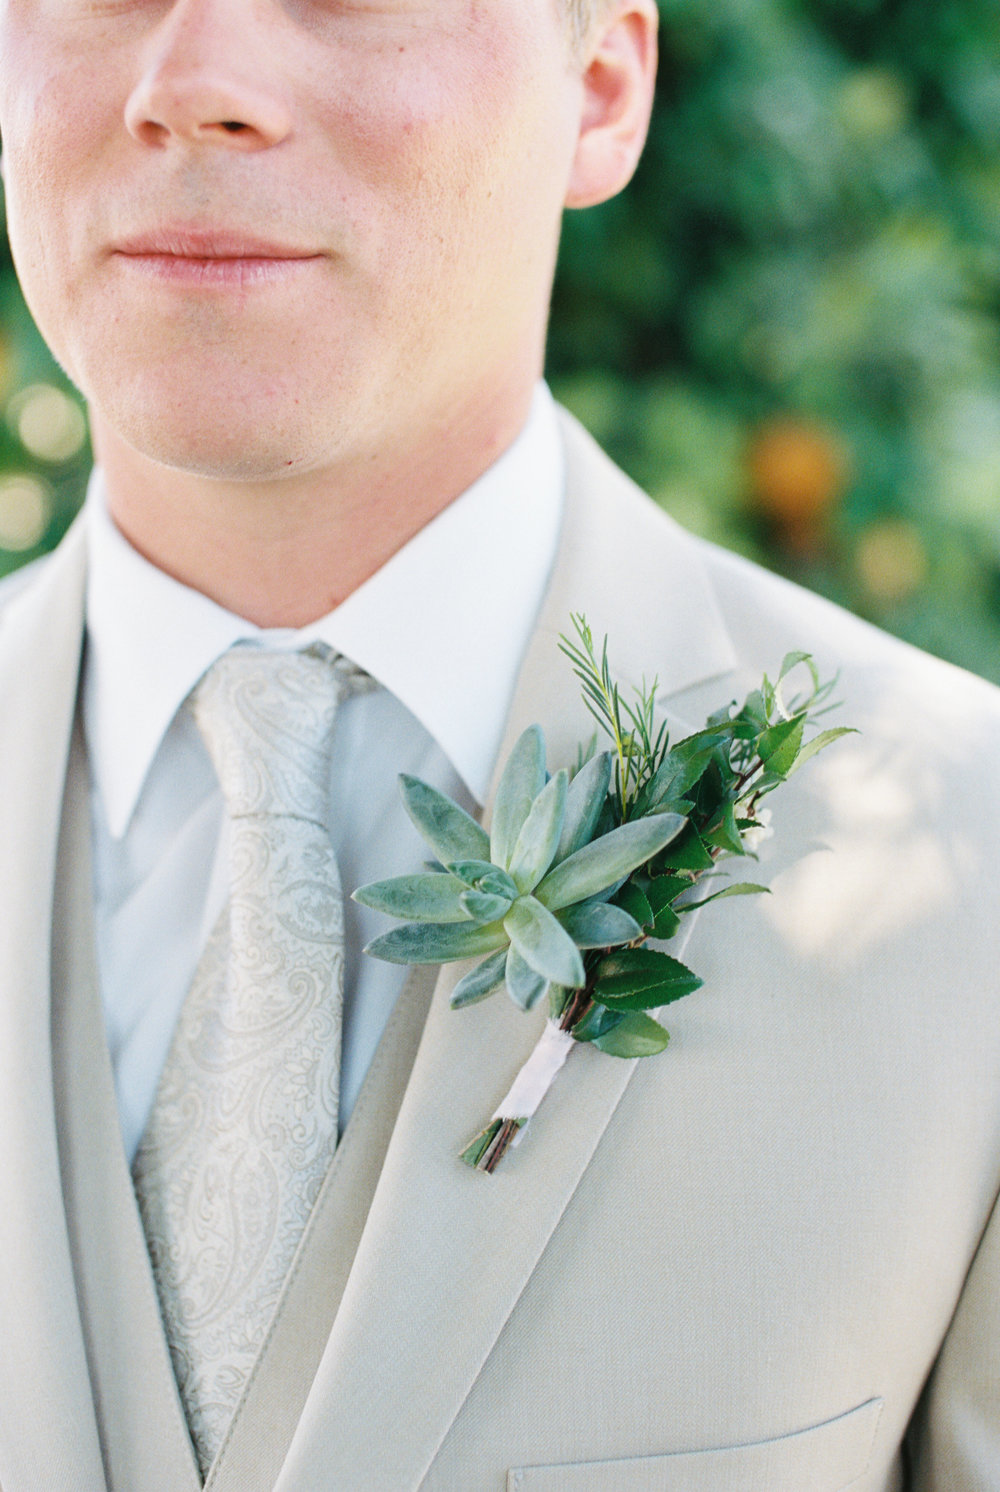 Dairy Farm Wedding - Succulent Boutonniere and Groom in tan suit